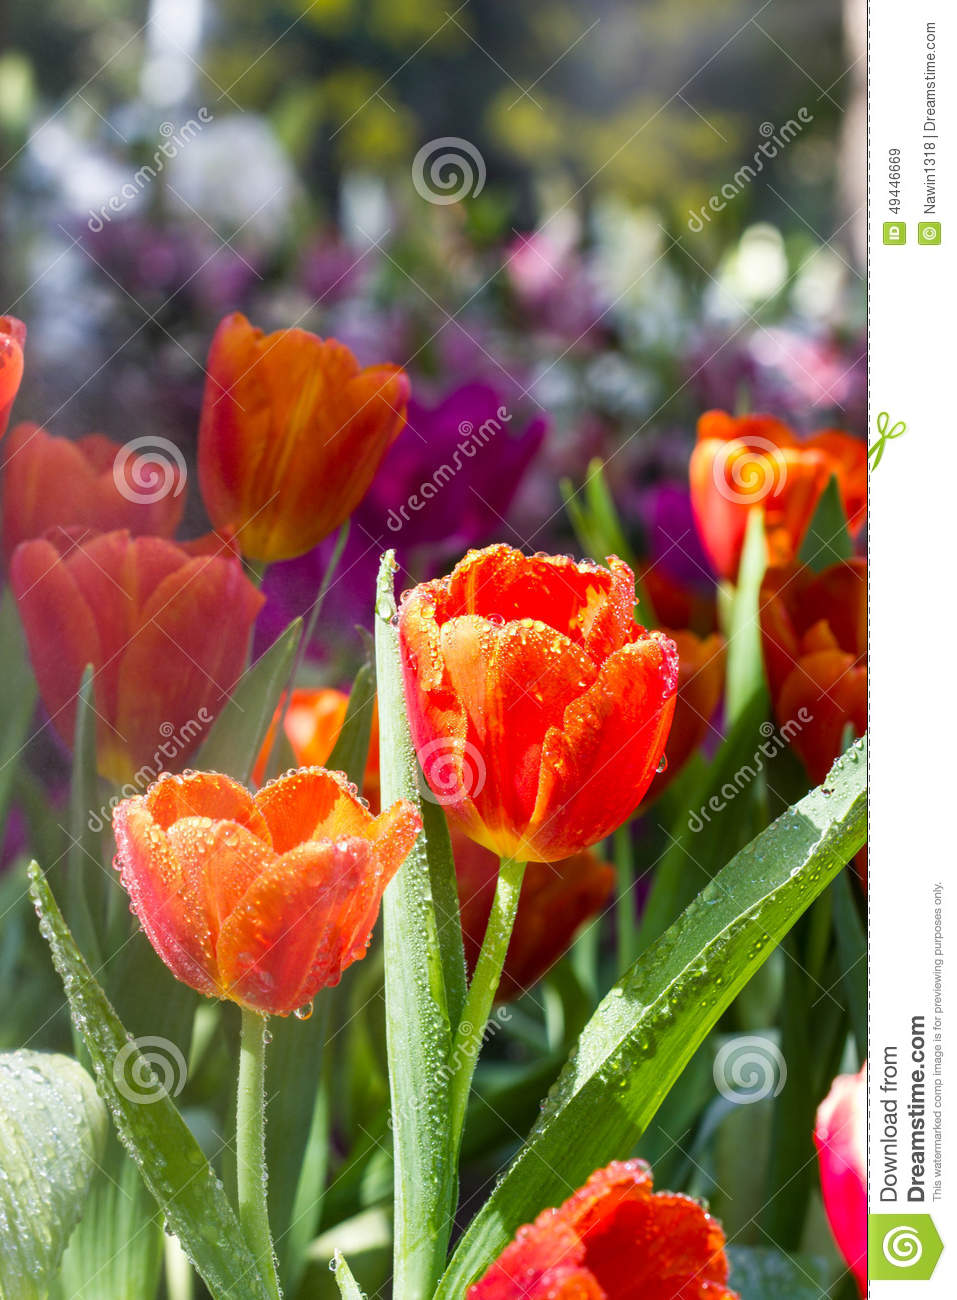 tulip festival bloom map with Stock Photo Orange Tulip Flower Festival Chiangrai Thailand Image49446669 on Tulips Galore And More At The Skagit Valley Tulip Festival In Skagit Valley Washington as well Stock Photo Orange Tulip Flower Festival Chiangrai Thailand Image49446669 also 8693271456 furthermore Saratoga State Park Map besides Skagit Valley Tulip Festival Guide With Kids.